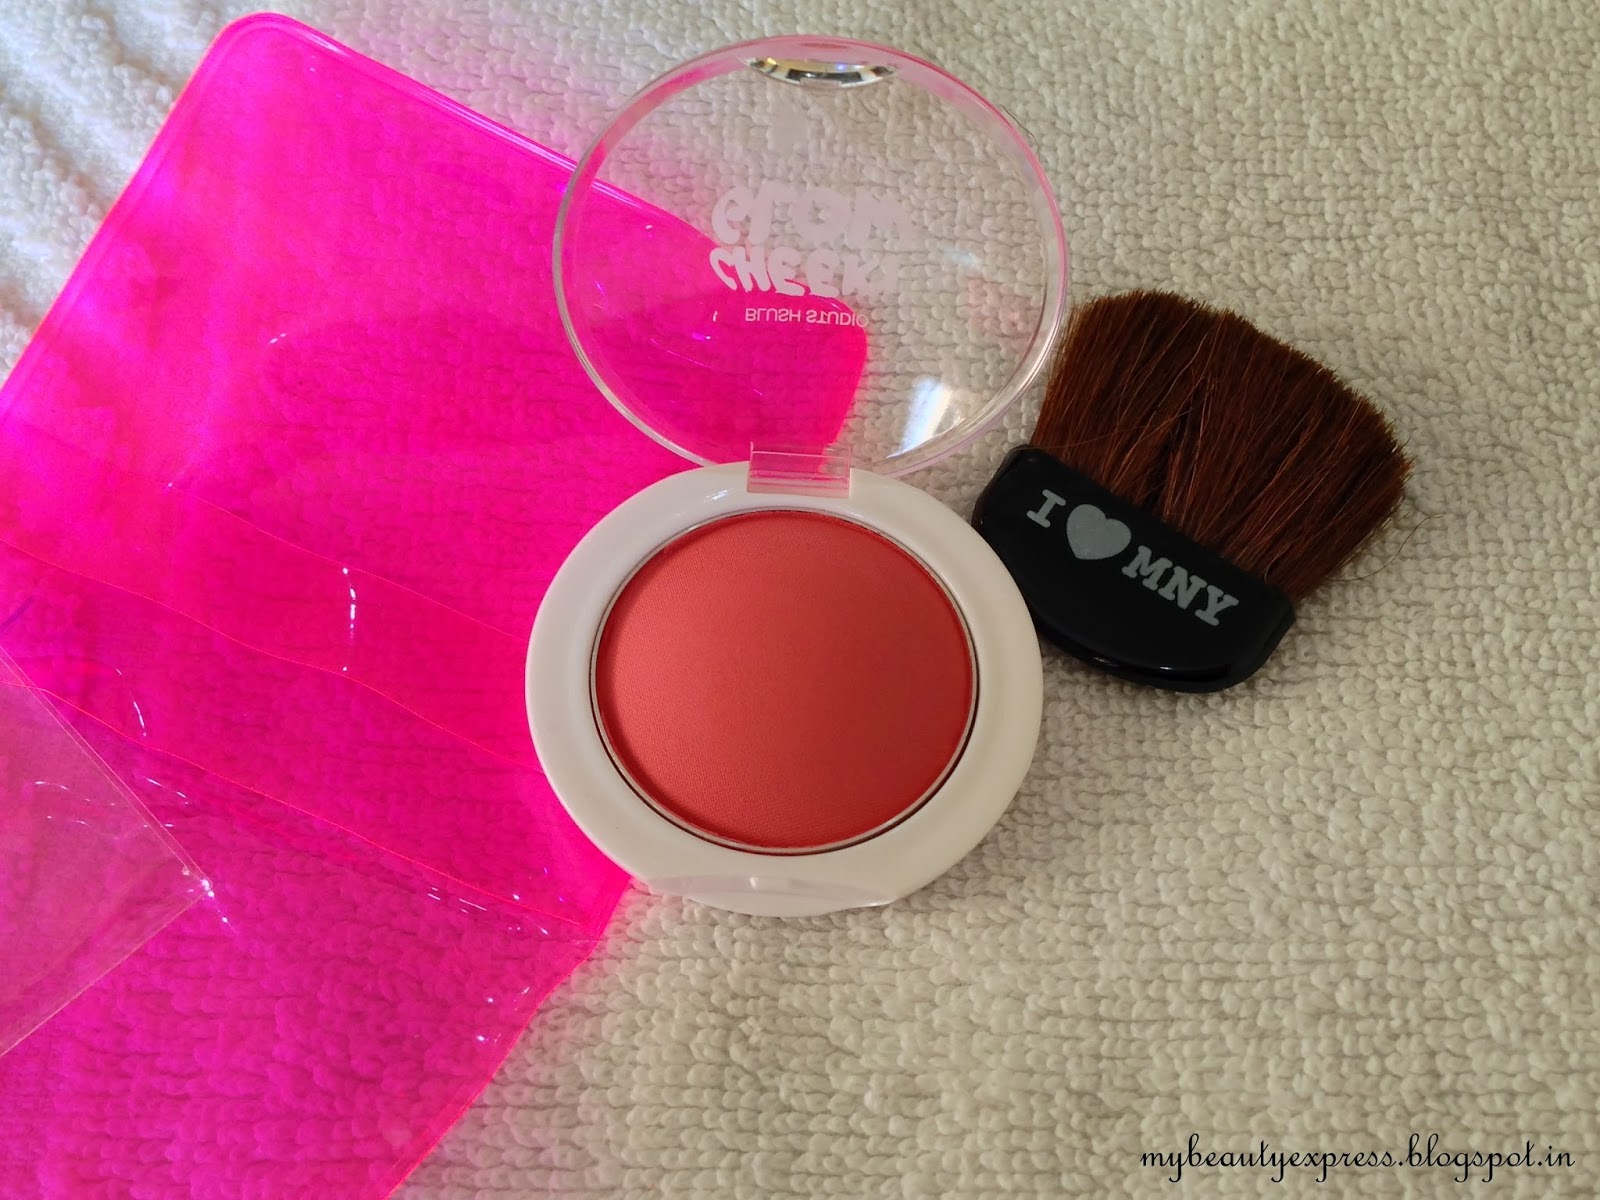 Maybelline Cheeky Glow Blush in Fresh Coral - Review, Swatches, Photos